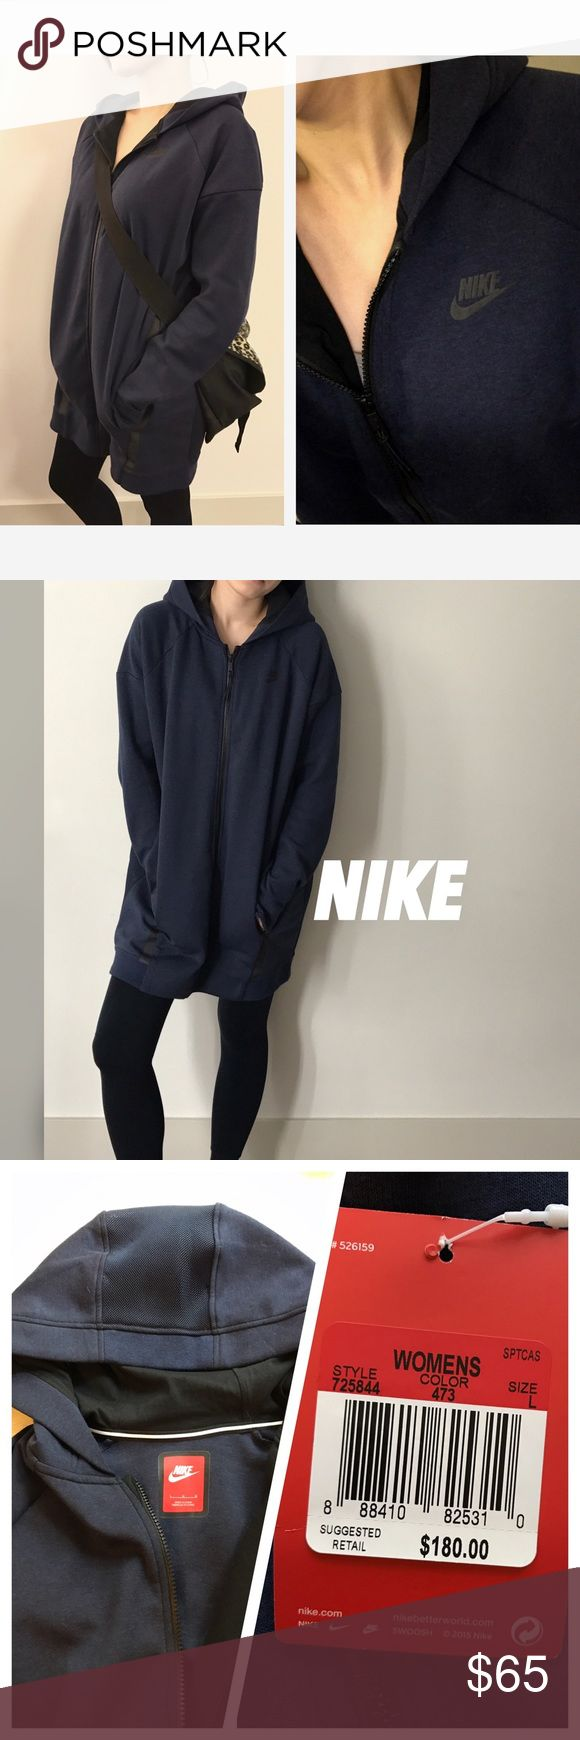 "NEW‼️Nike Mesh Cocoon Hoodie Mesh Cocoon Jacket. Feels like big Hoodie. Style #725844. Model wears size L ( For reference, I'm 5'5"" tall, 121lb, it's a bit big for me.) It has a lot room, very cozy but the hood and both underarm sides is mesh design. Underarm to the bottom has 23inches. Color: Navy. New with tag. Retail price is $180. Great use for outfit on the plane✈️ or maternity wear. Size S and L available✔️✔️✔️ Nike Jackets & Coats"